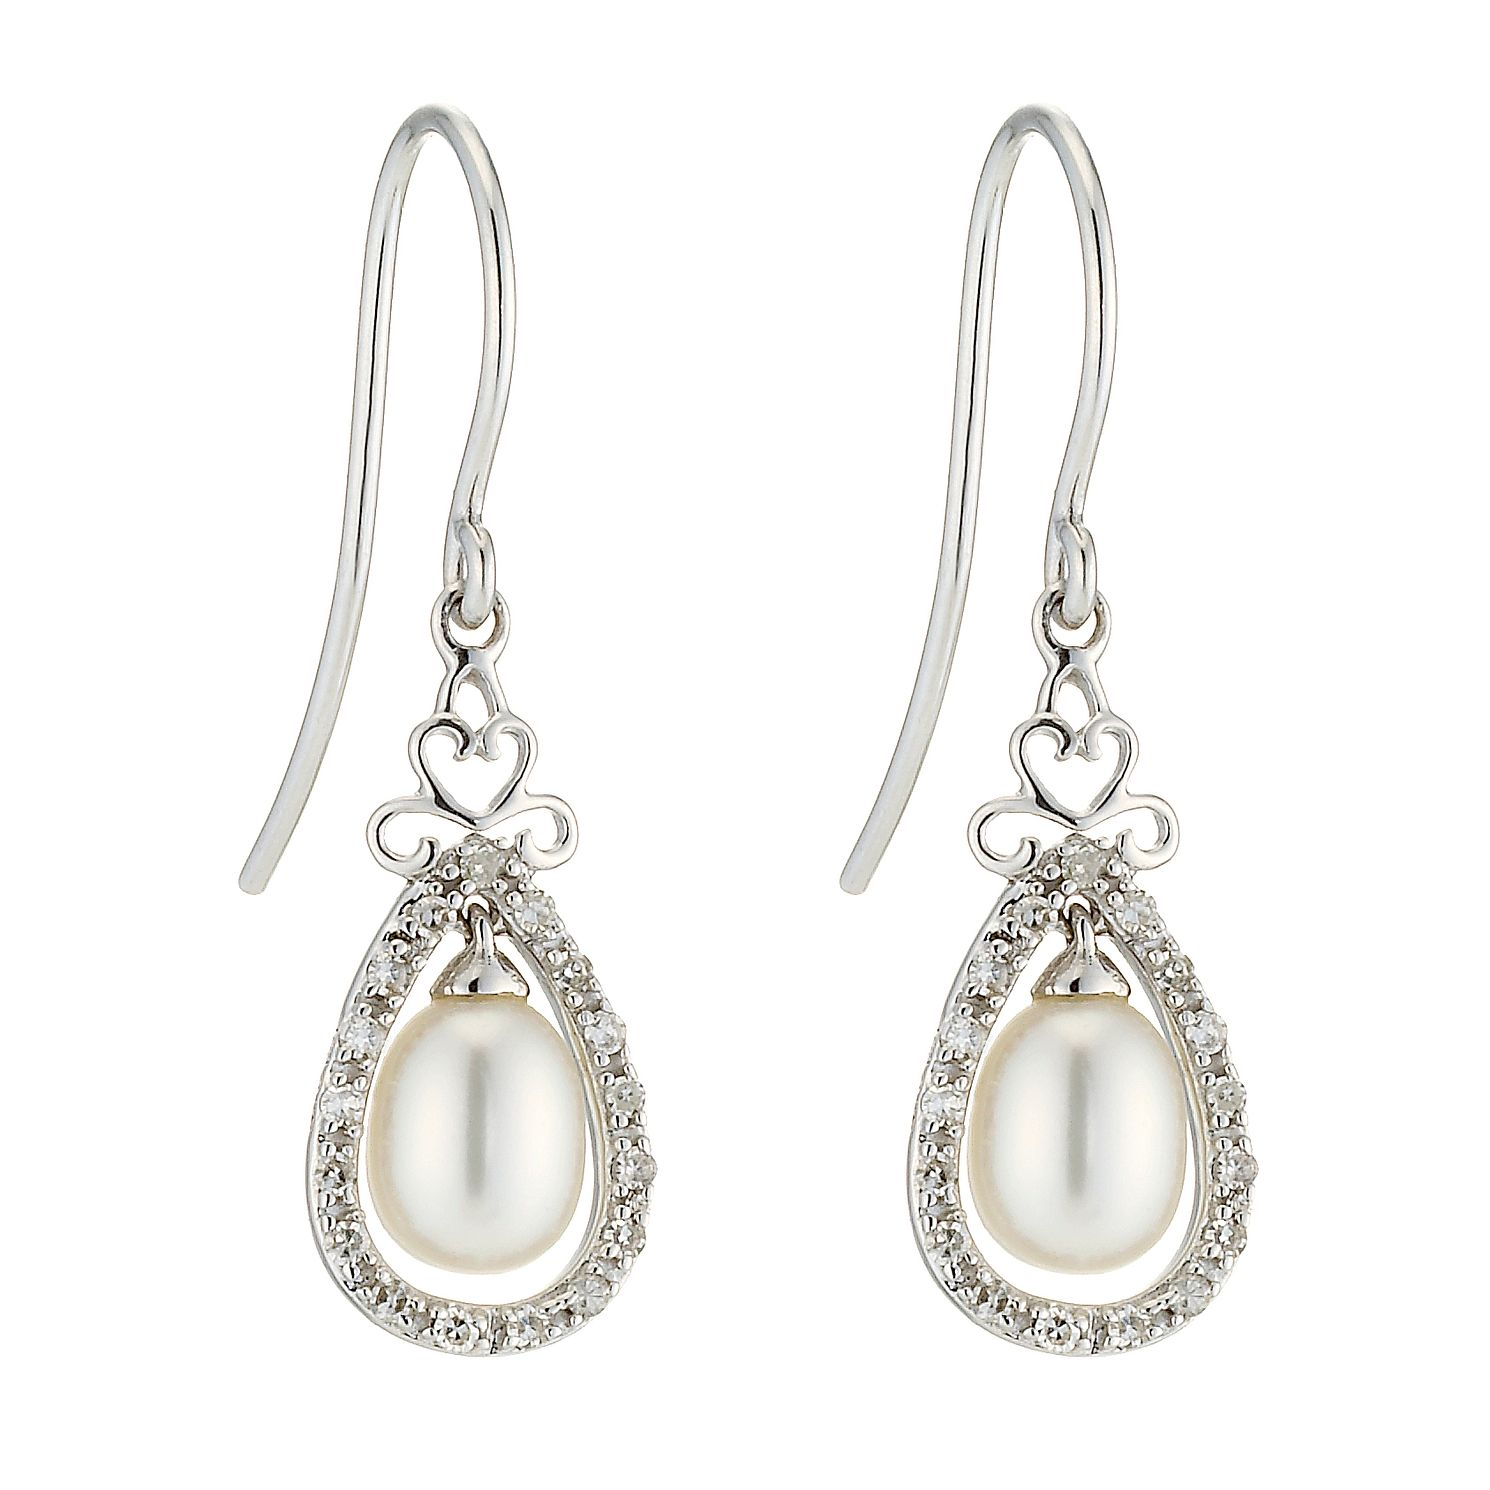 9ct White Gold Cultured Freshwater Pearl & Diamond Earrings - Product number 8467366